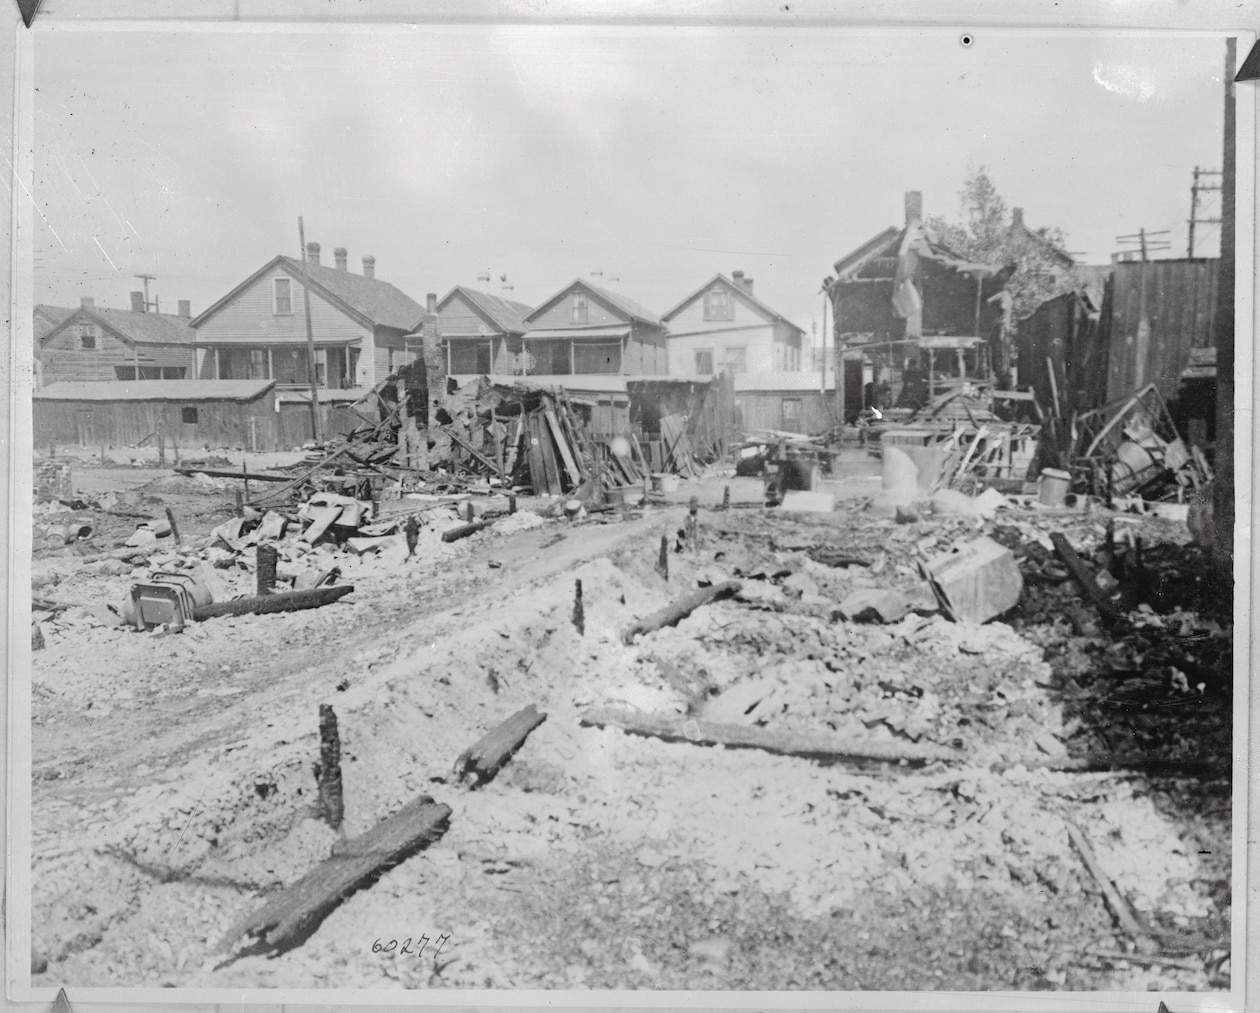 burned down houses with a few still standing in the background